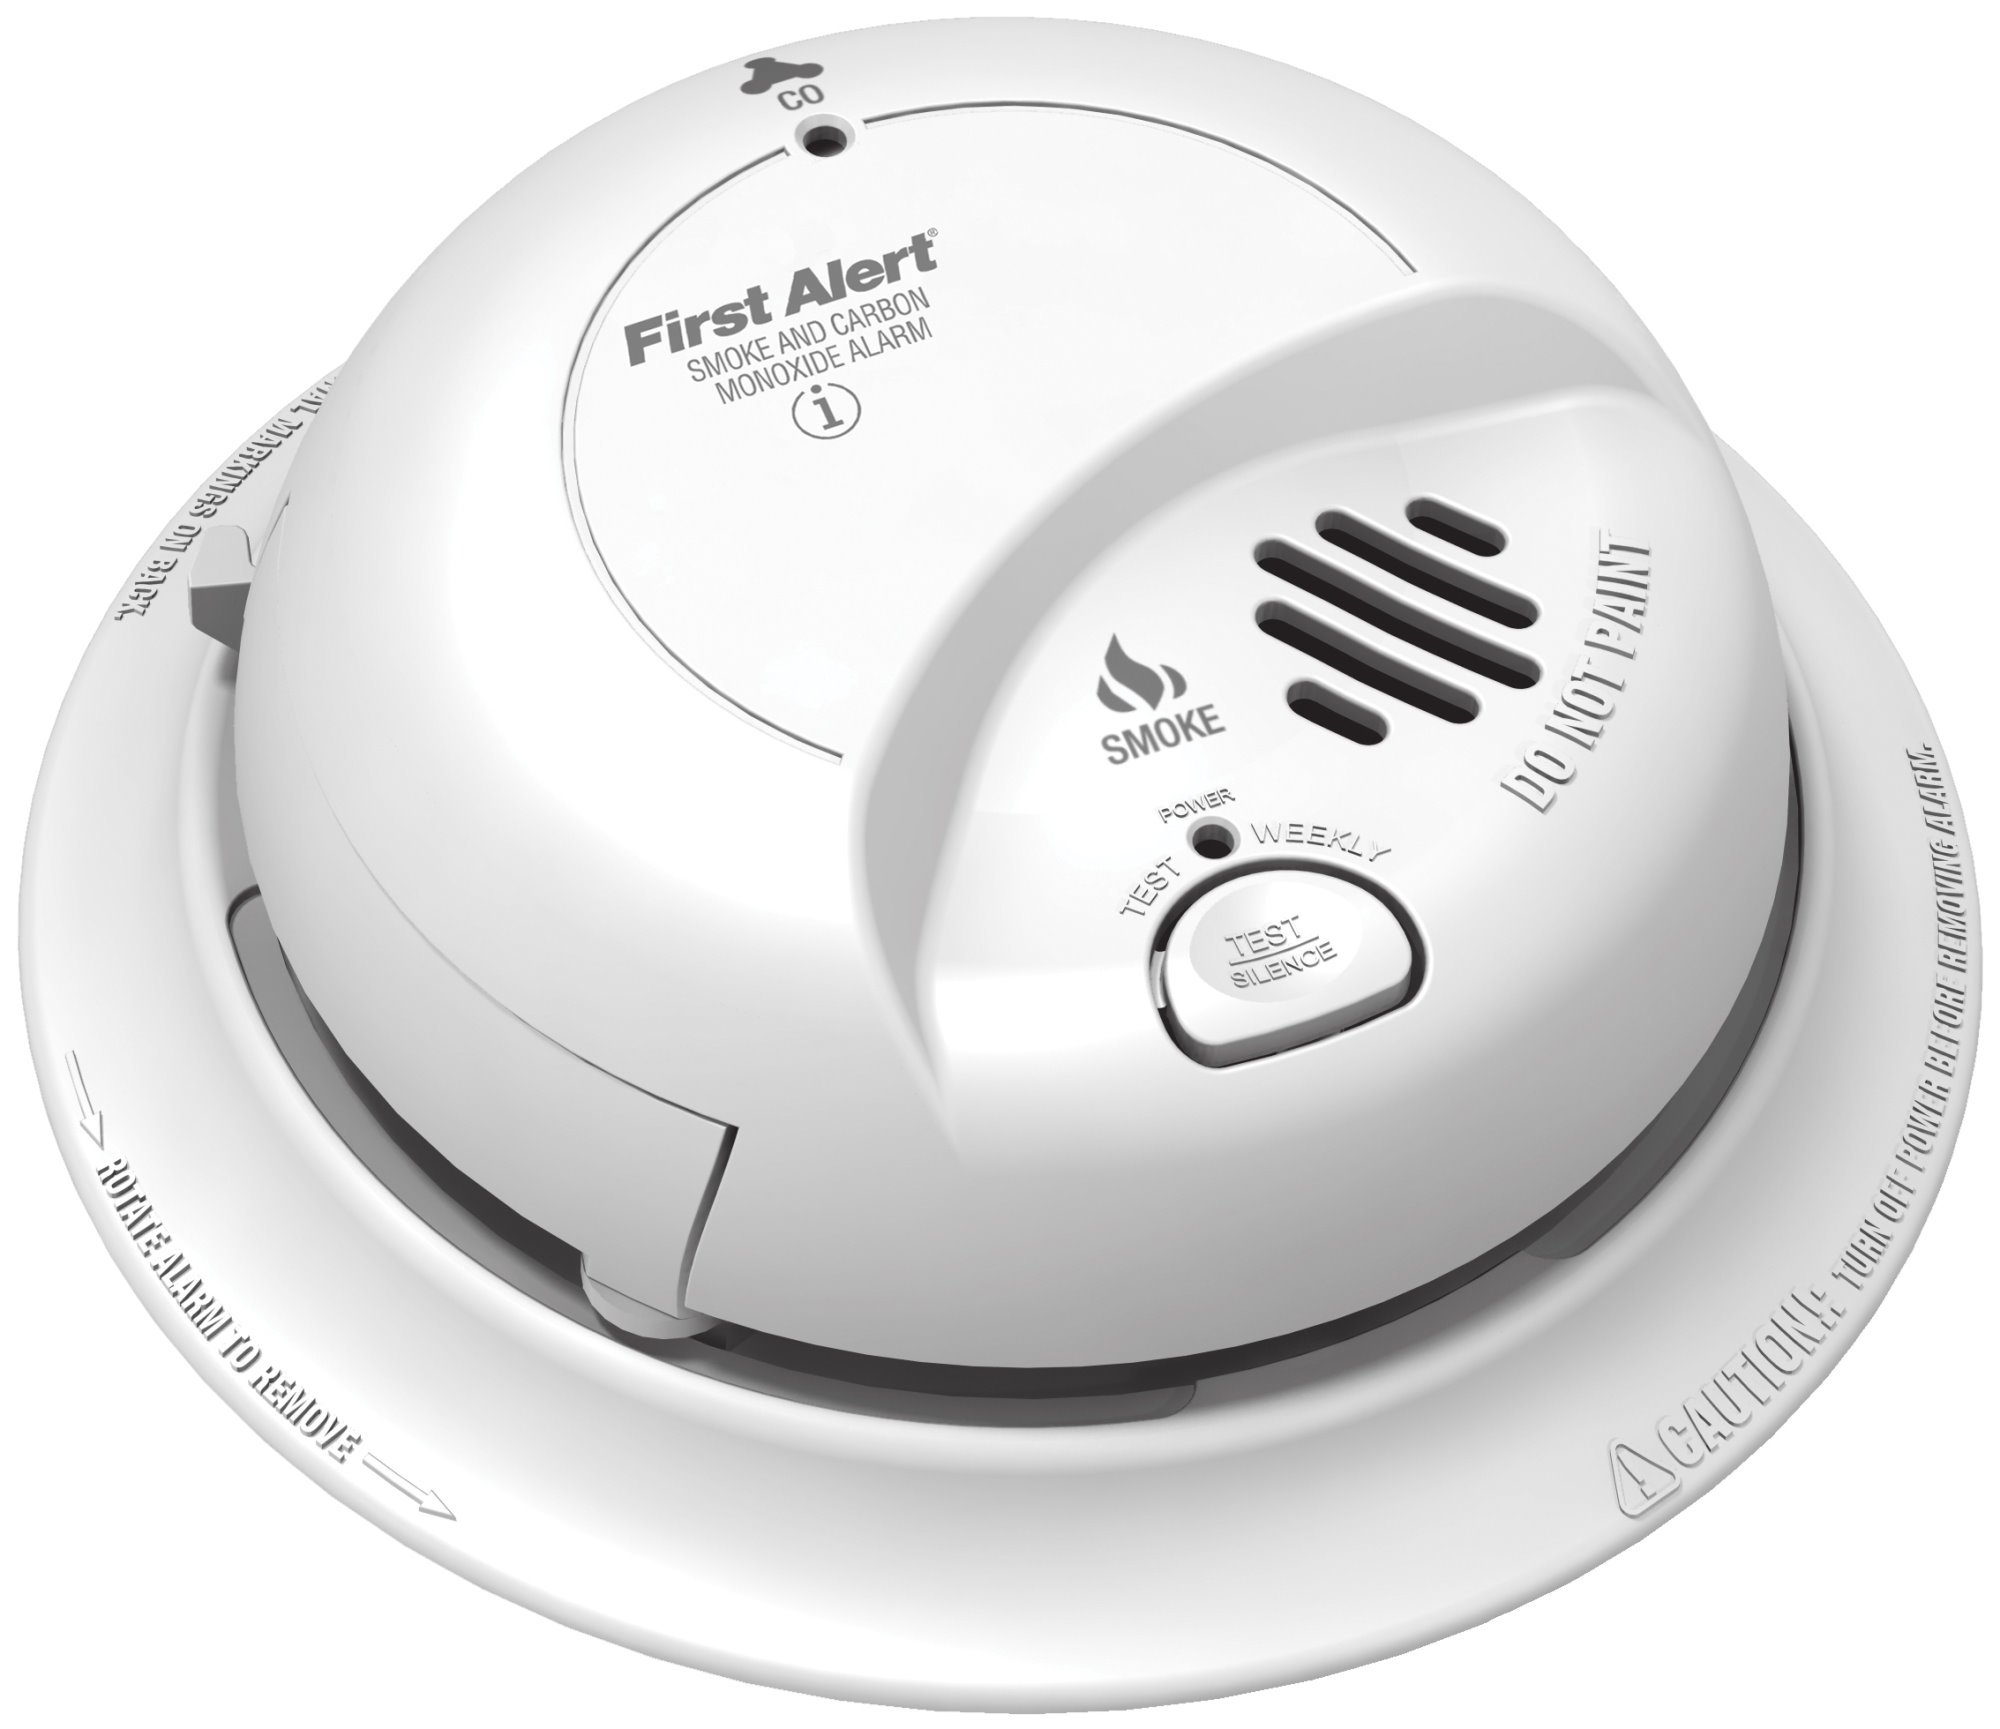 First Alert SC9120B Hardwire Combination Smoke/Carbon Monoxide Alarm with Battery Backup (6 Pack)